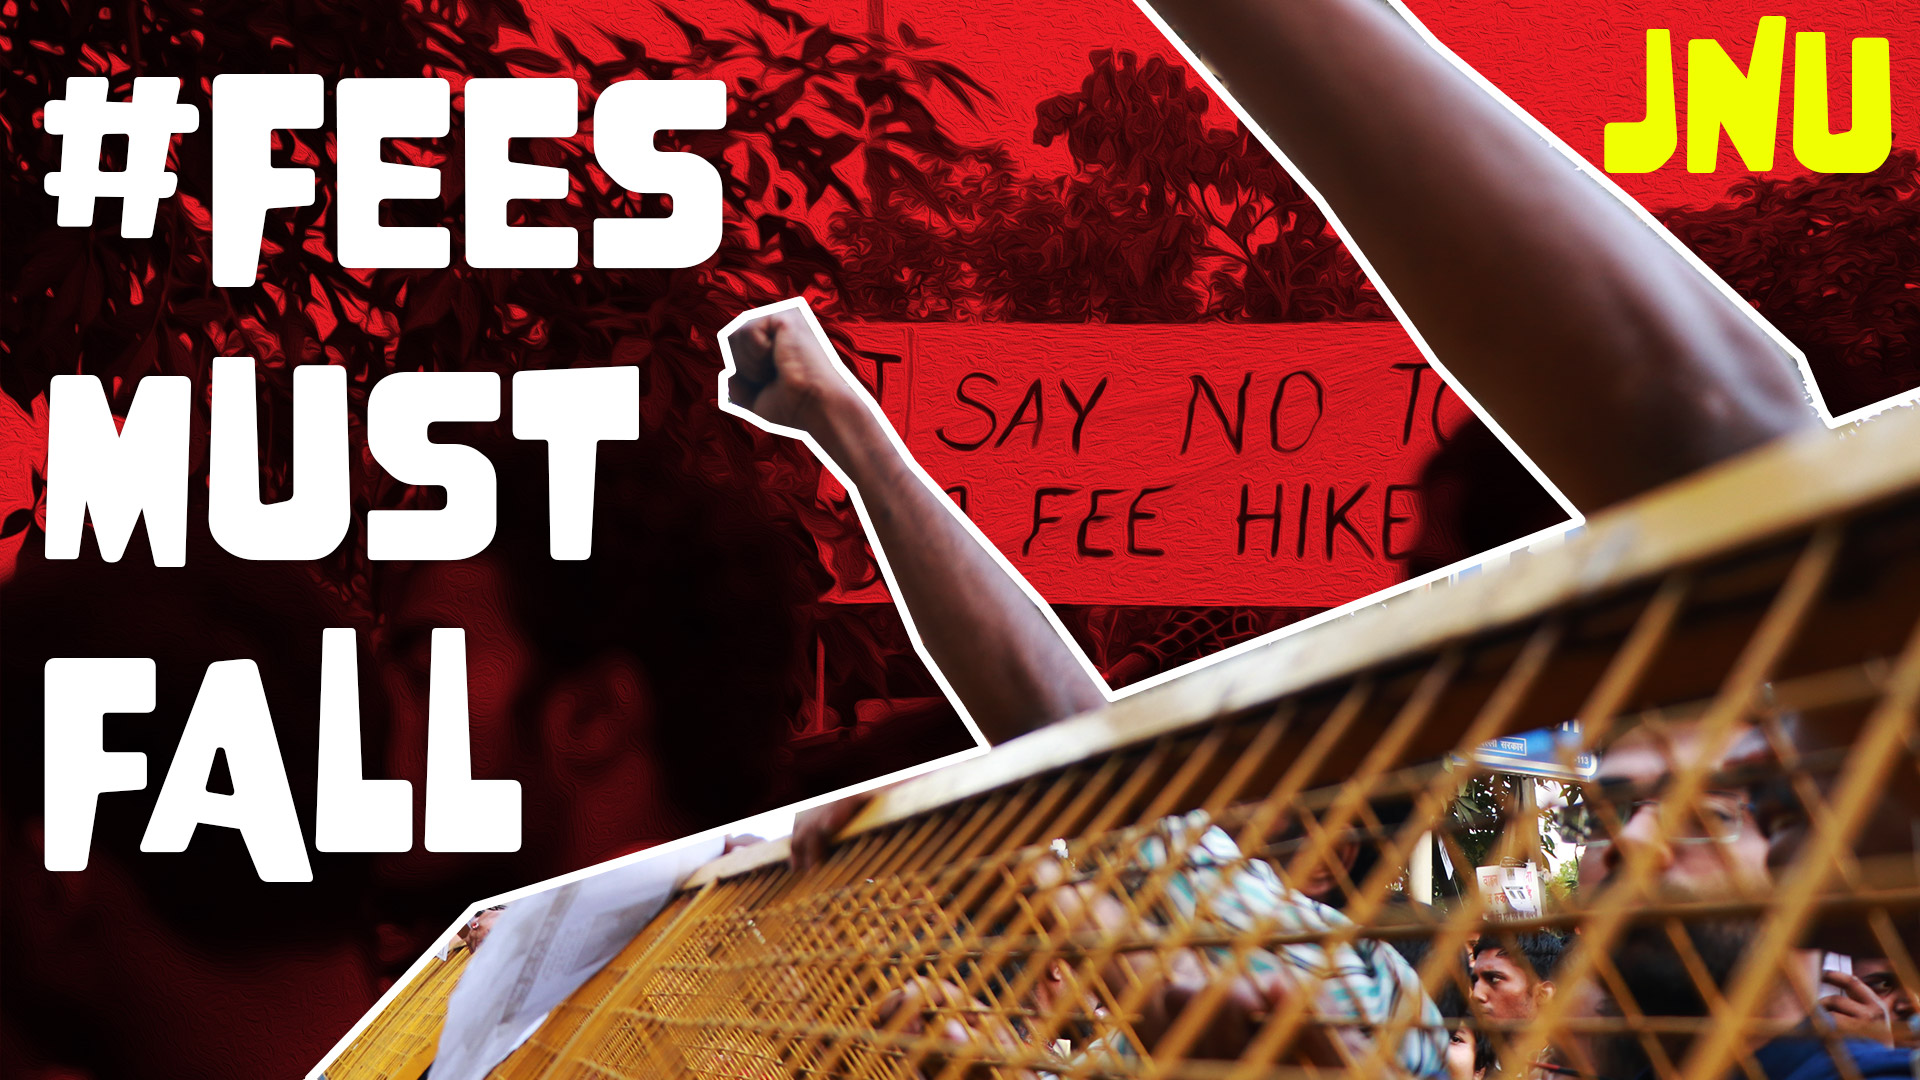 #FeesMustFall, JNU protest against fee hike